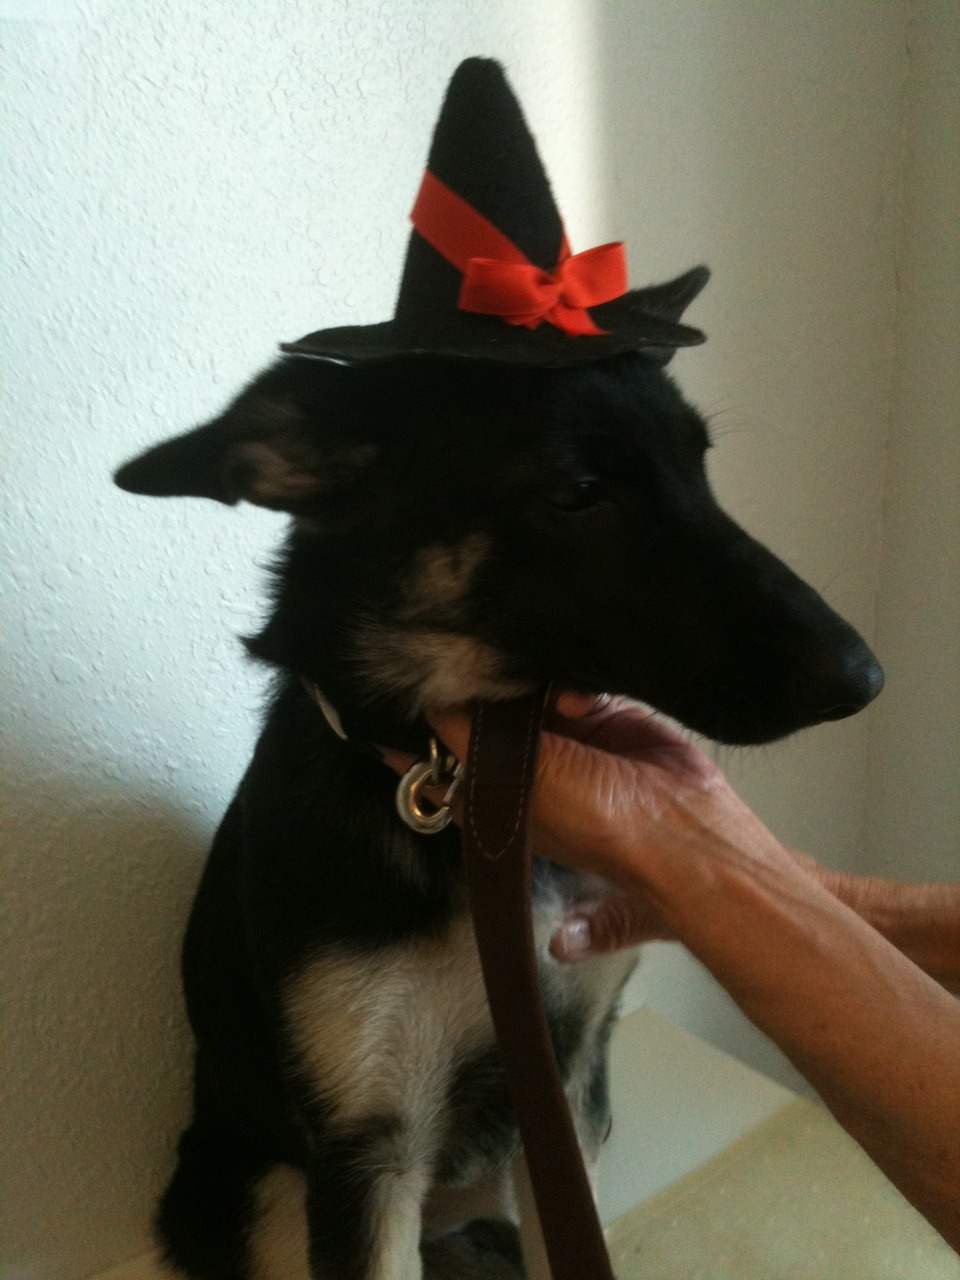 """To mark the time of year when people start putting funny costumes on their pets, I present """"Shorty in a hat."""" Quite understated I think. Email us your photos of your pet's Halloween costume to info@dirty-dog.com and we'll share them with the world. There might just be something in it for the cutest one! Be sure to include your pet's info (name, breed, age, etc)."""